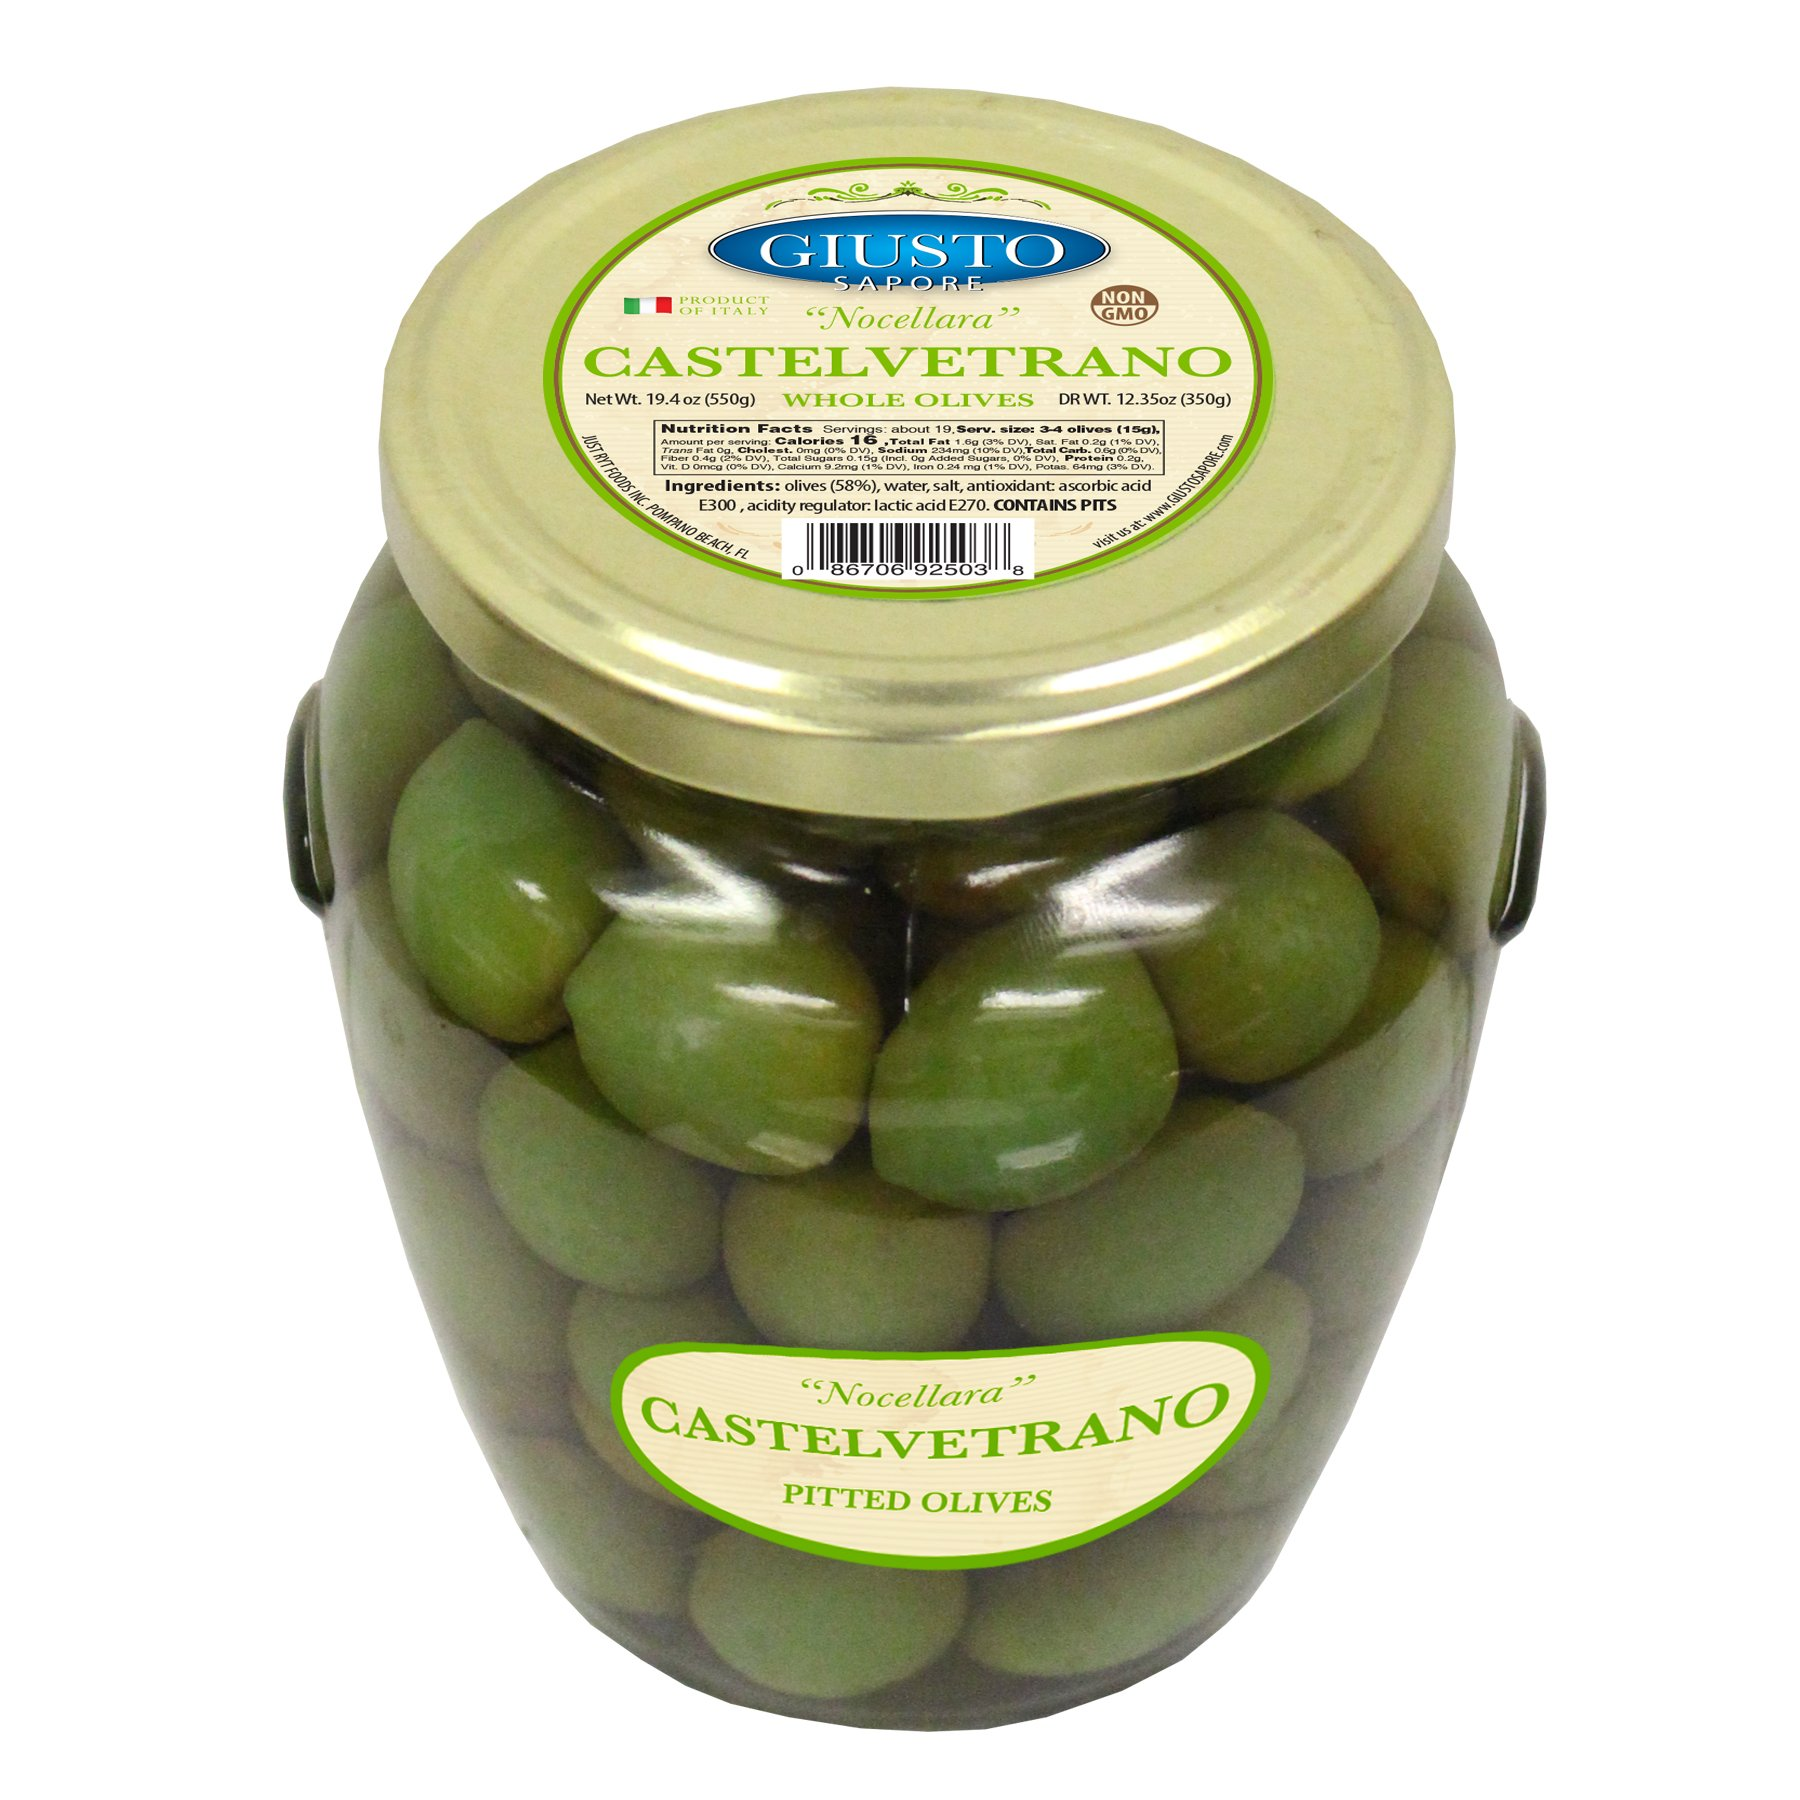 Giusto Sapore Italian Olives - Castelvetrano Whole - Premium Gourmet GMO Free - Imported from Italy and Family Owned - 19.4oz.